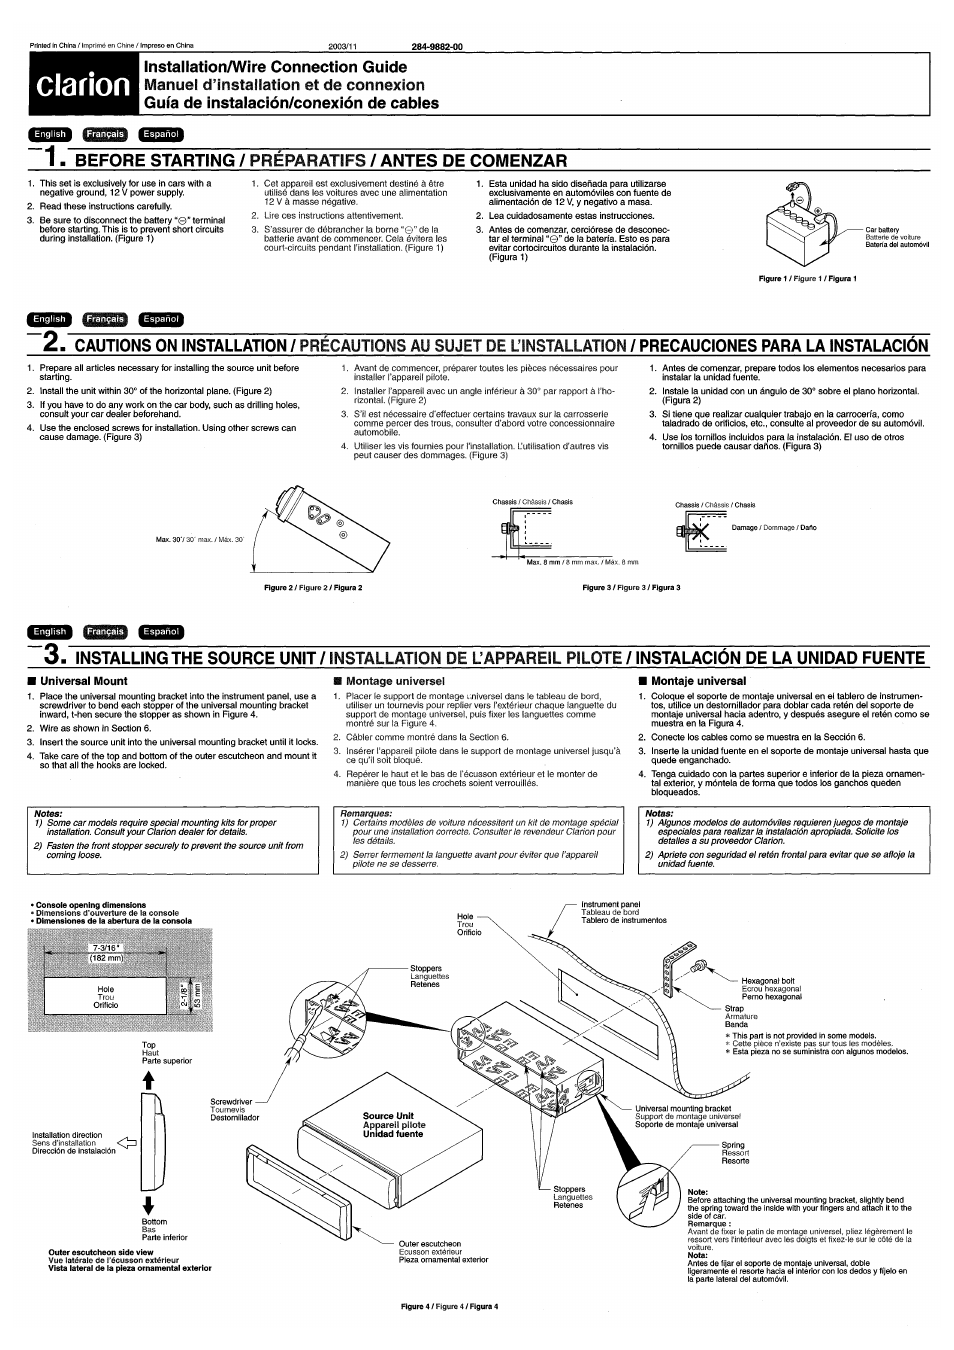 clarion install guide user manuals